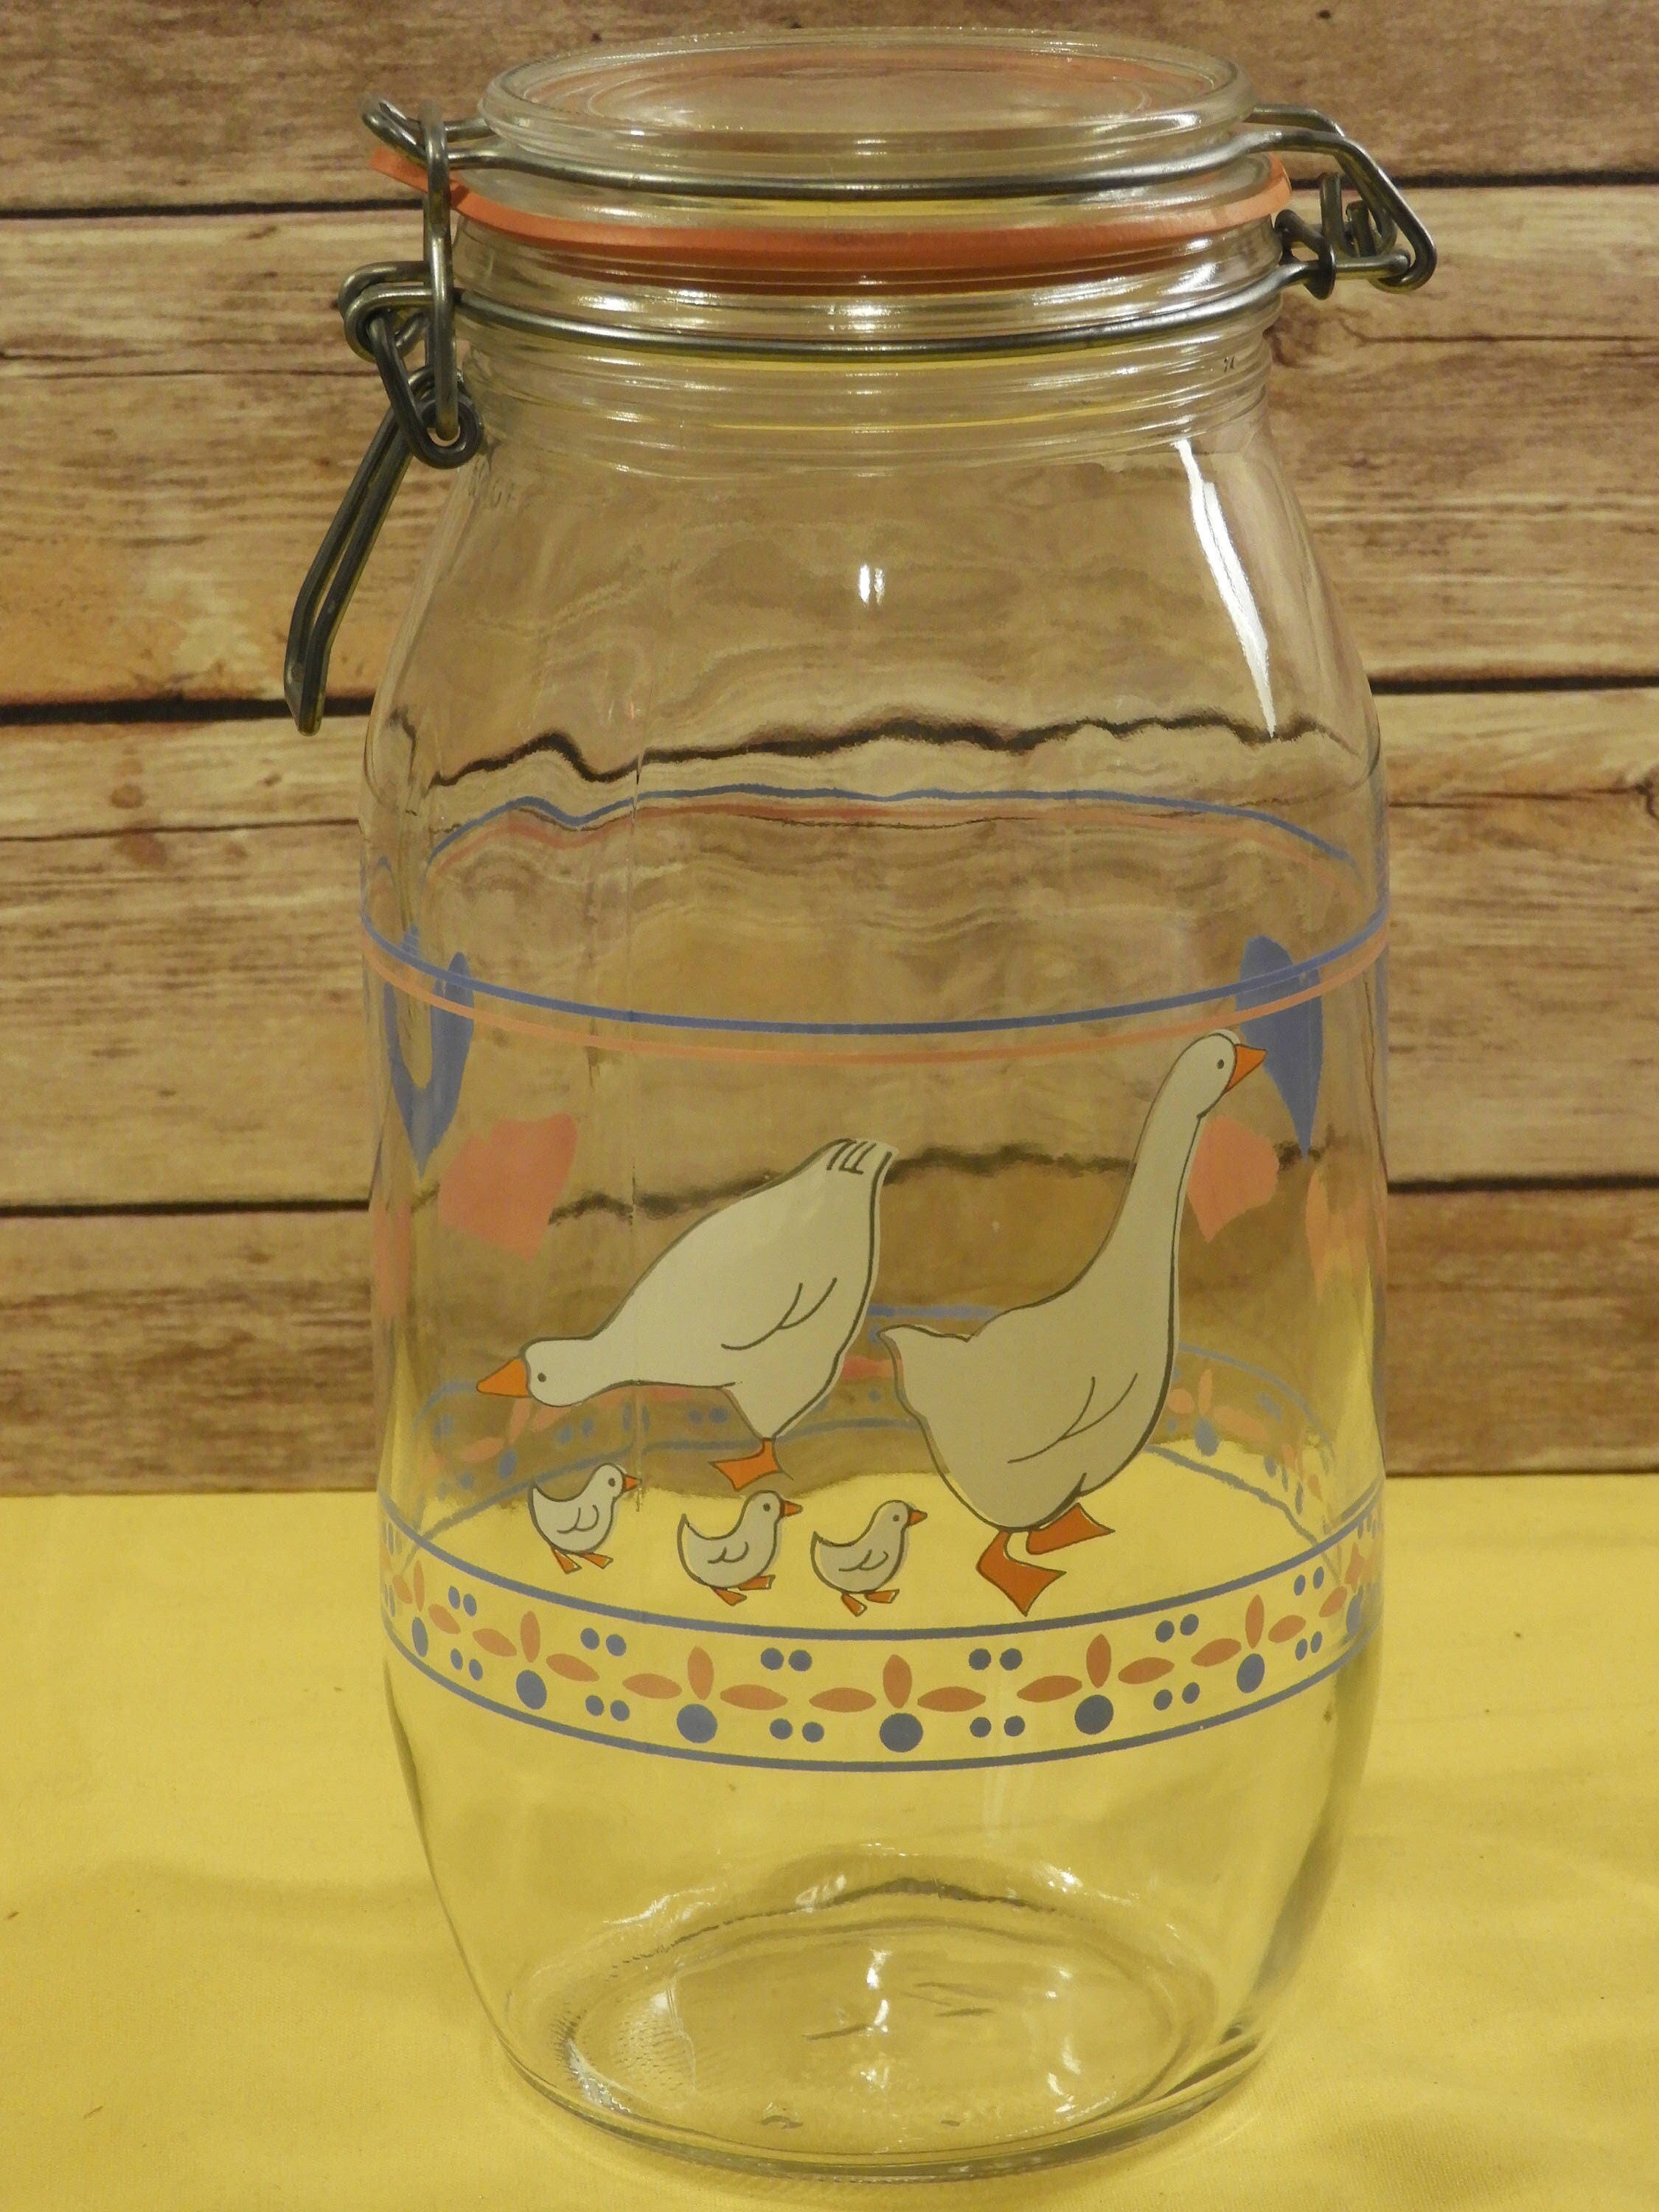 Vintage Arcoroc Duck Theme Glass Canister, 2 Liter Glass Apothecary Jar W/Rubber  Seal,Ornate Glass Storage Jar,Arco France Jar, Kitchen Jars